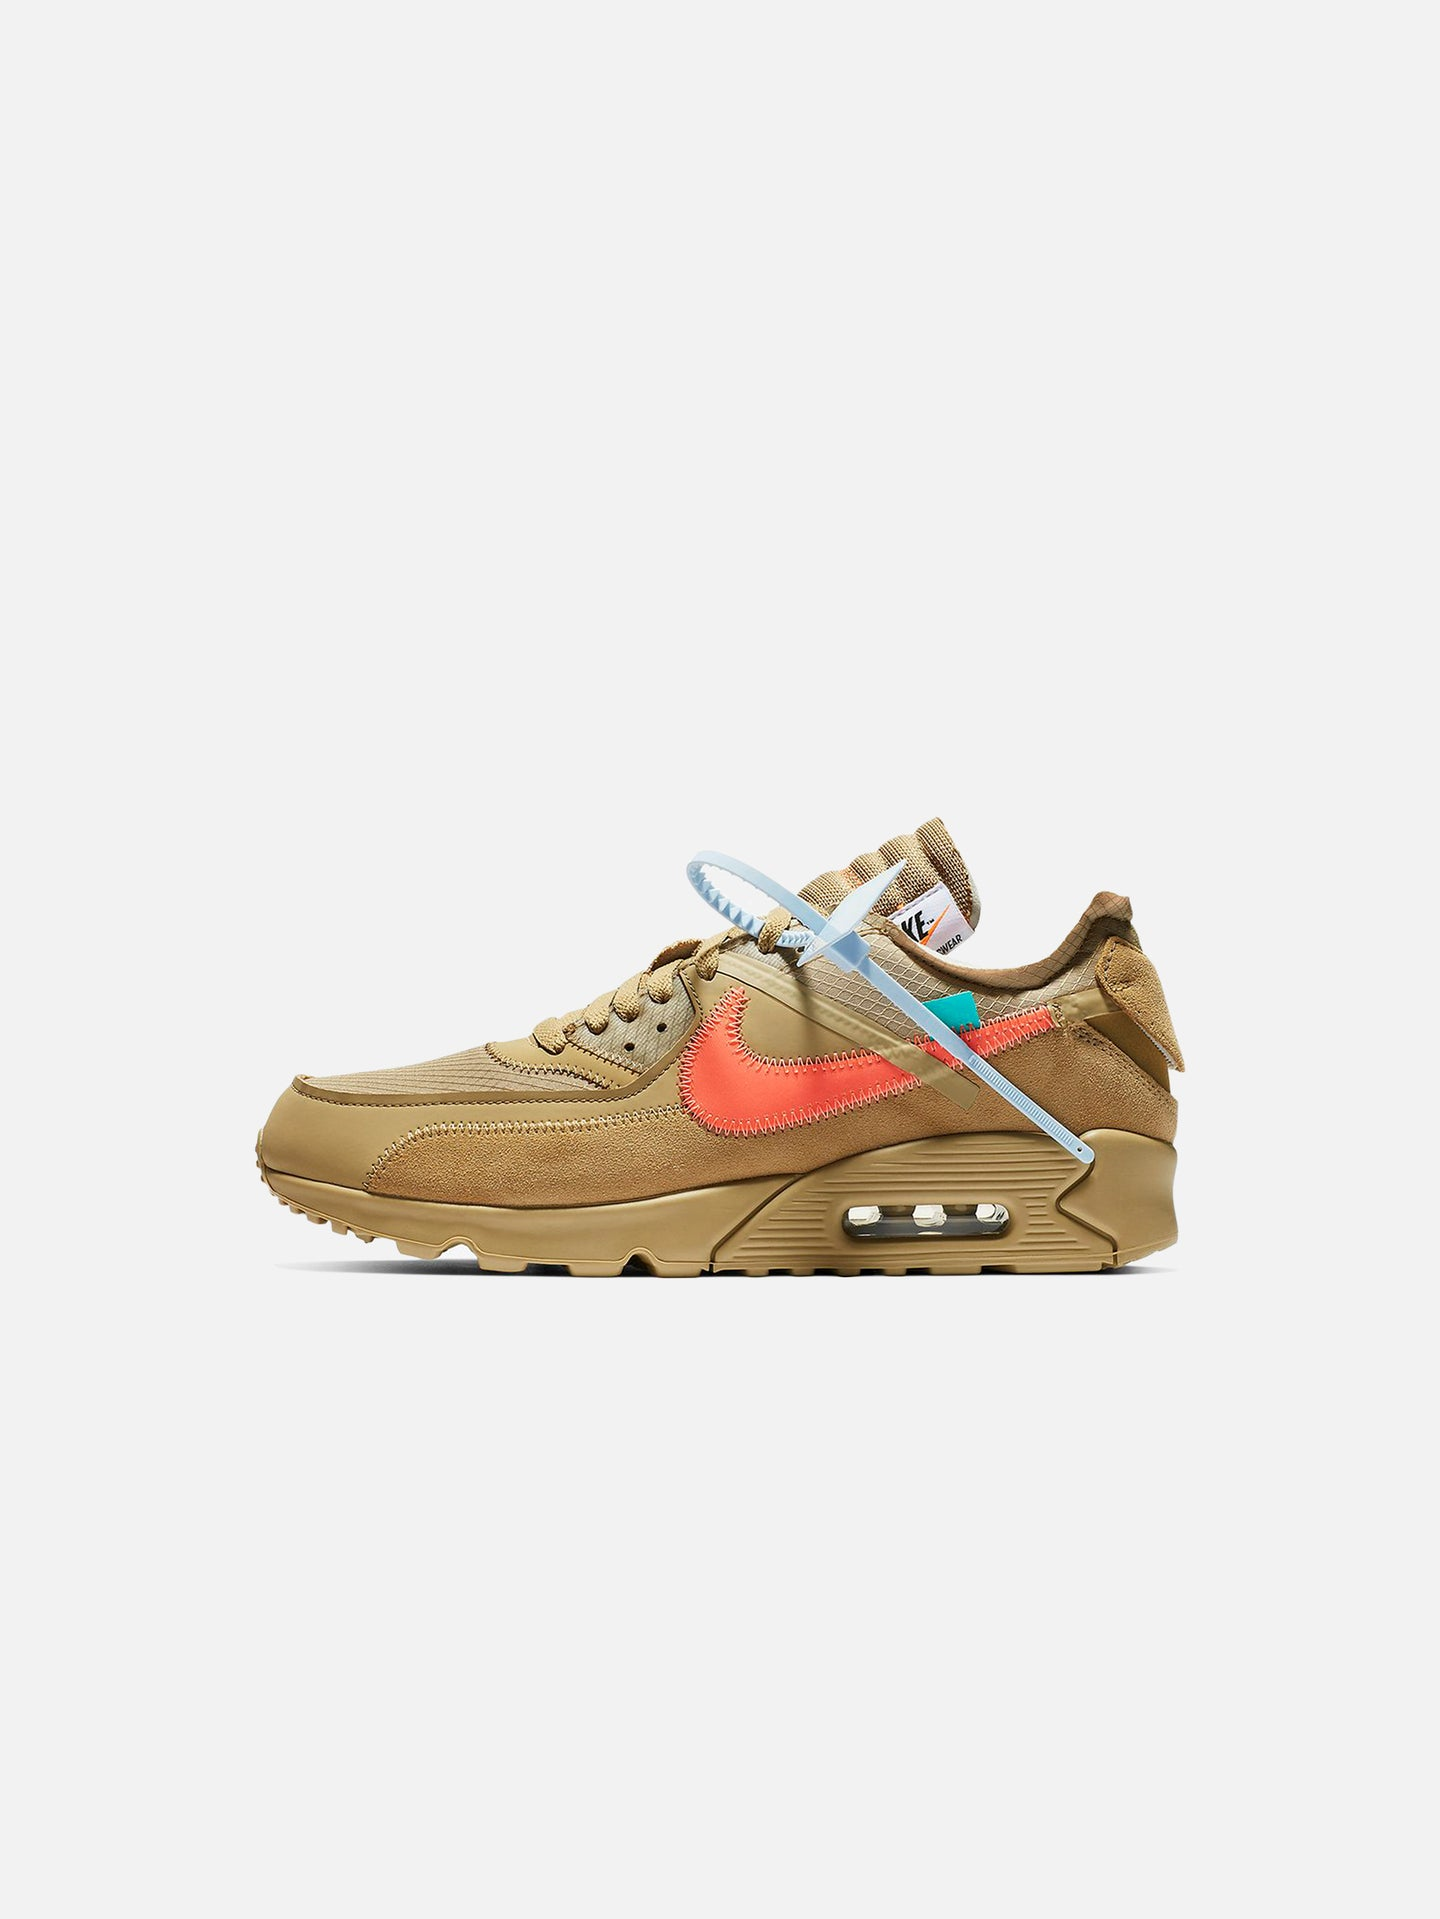 x OFF WHITET AIR MAX 90: DESERT ORE